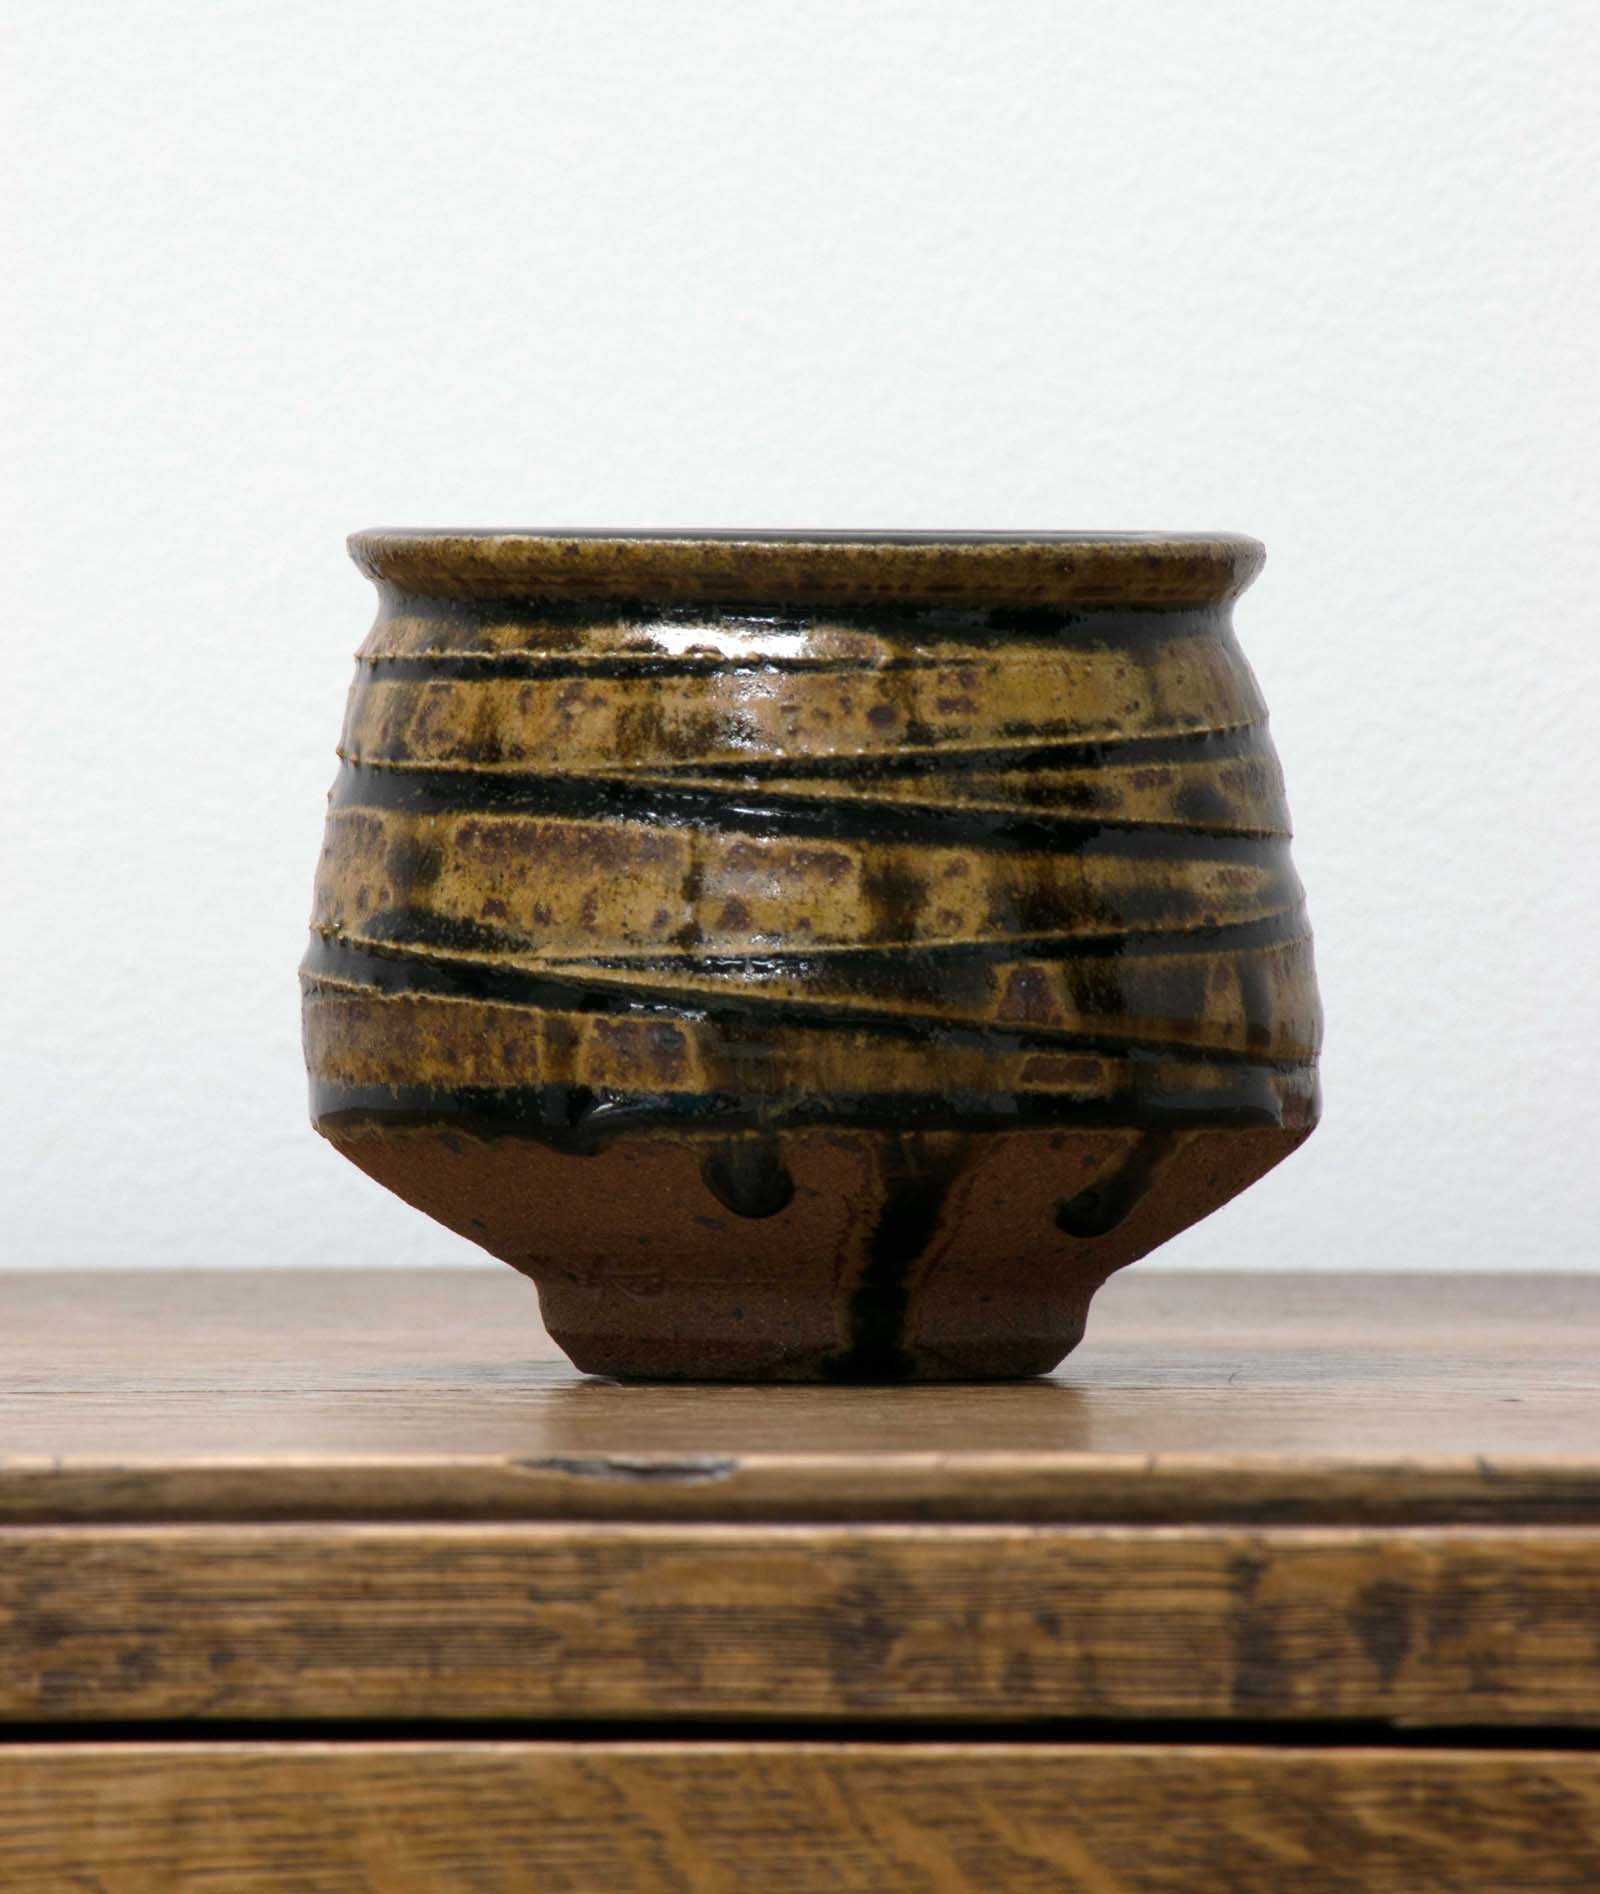 photo of a small squat bowl with a brown and green glaze